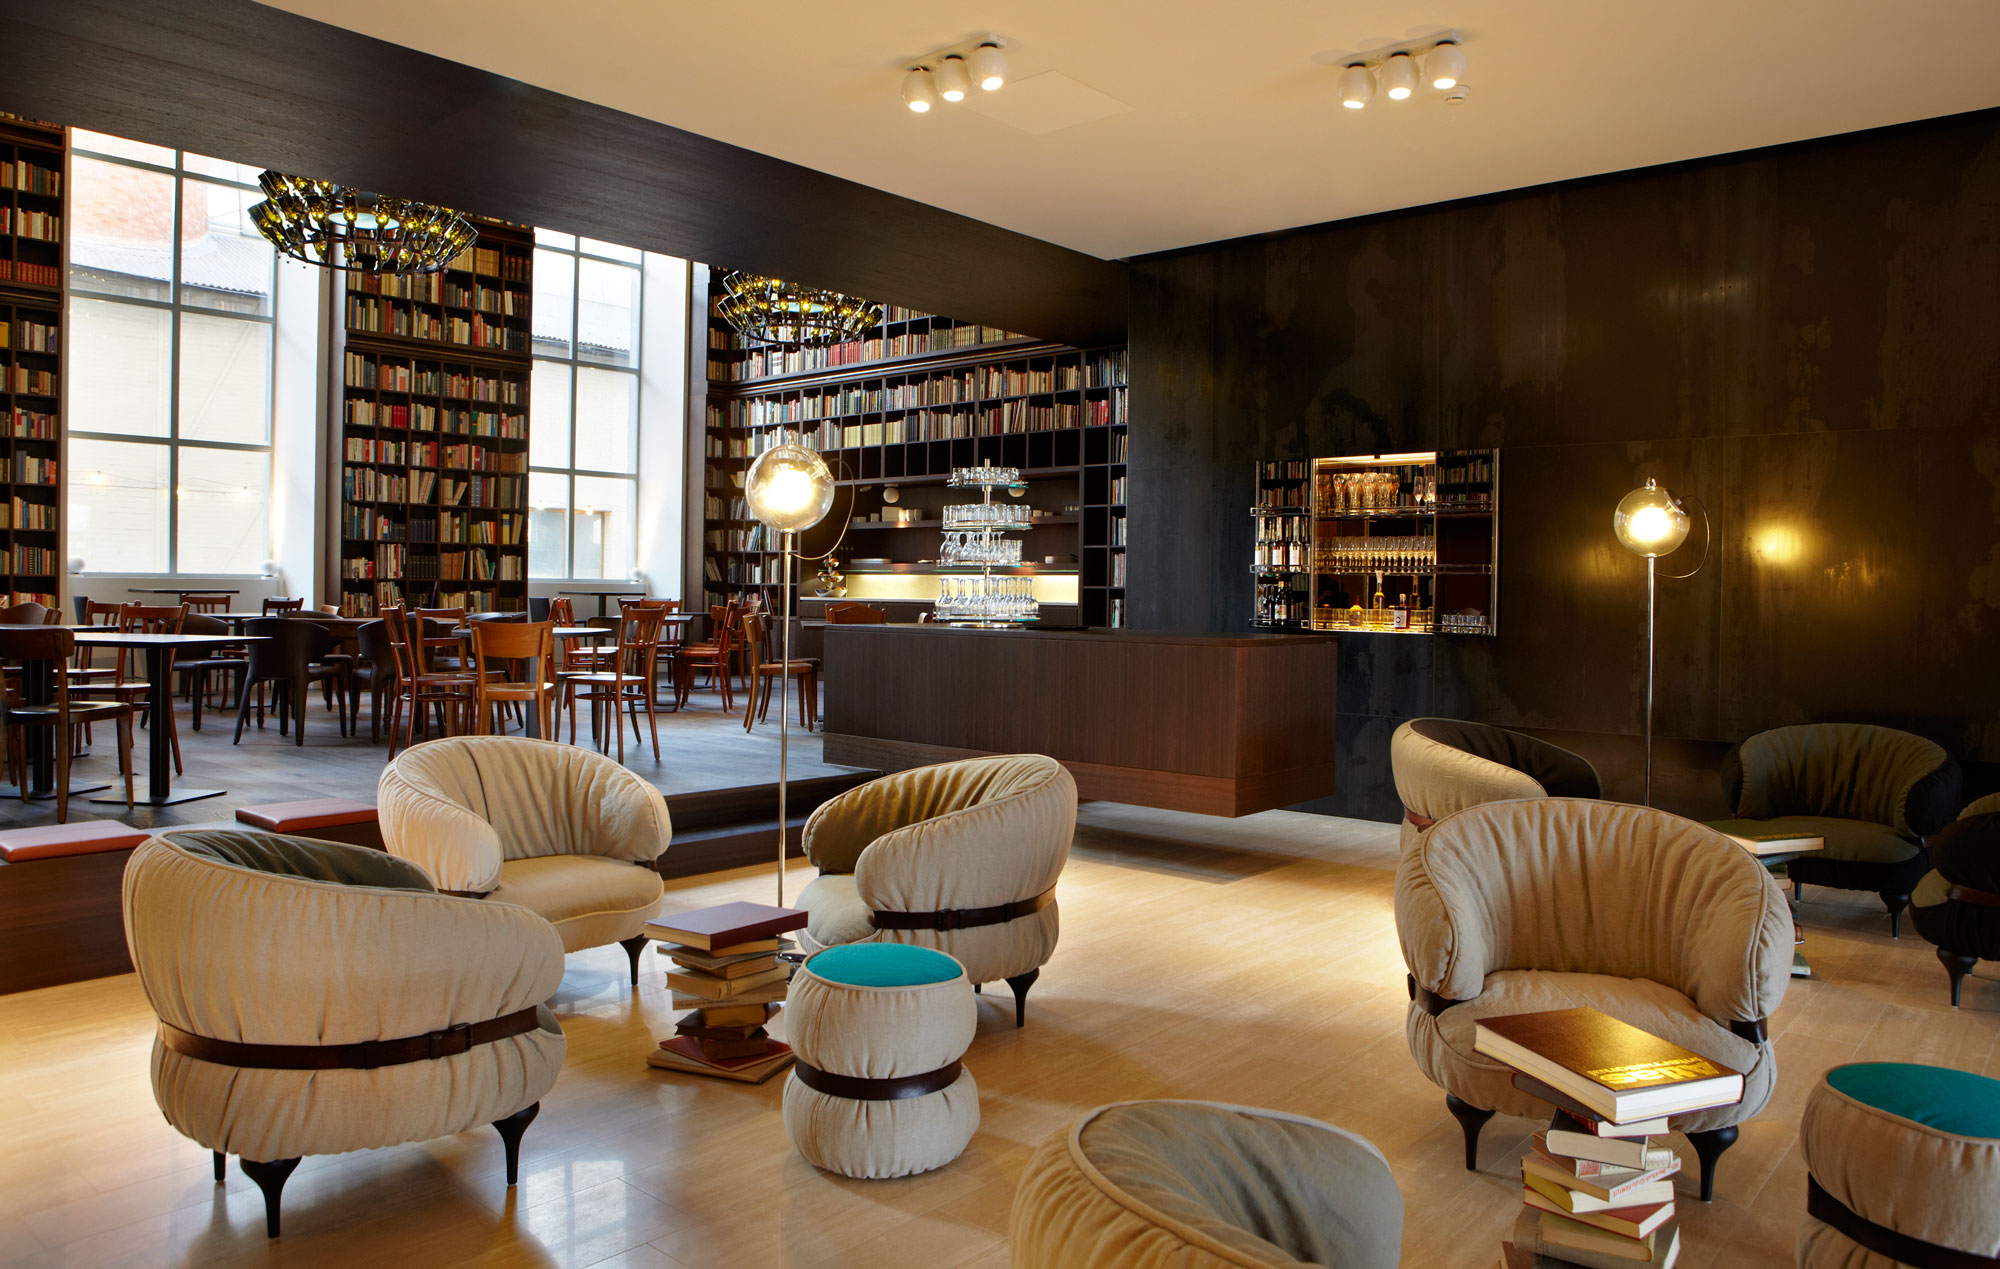 B2 boutique hotel by althammer hochuli architekten for Design boutique hotel venice